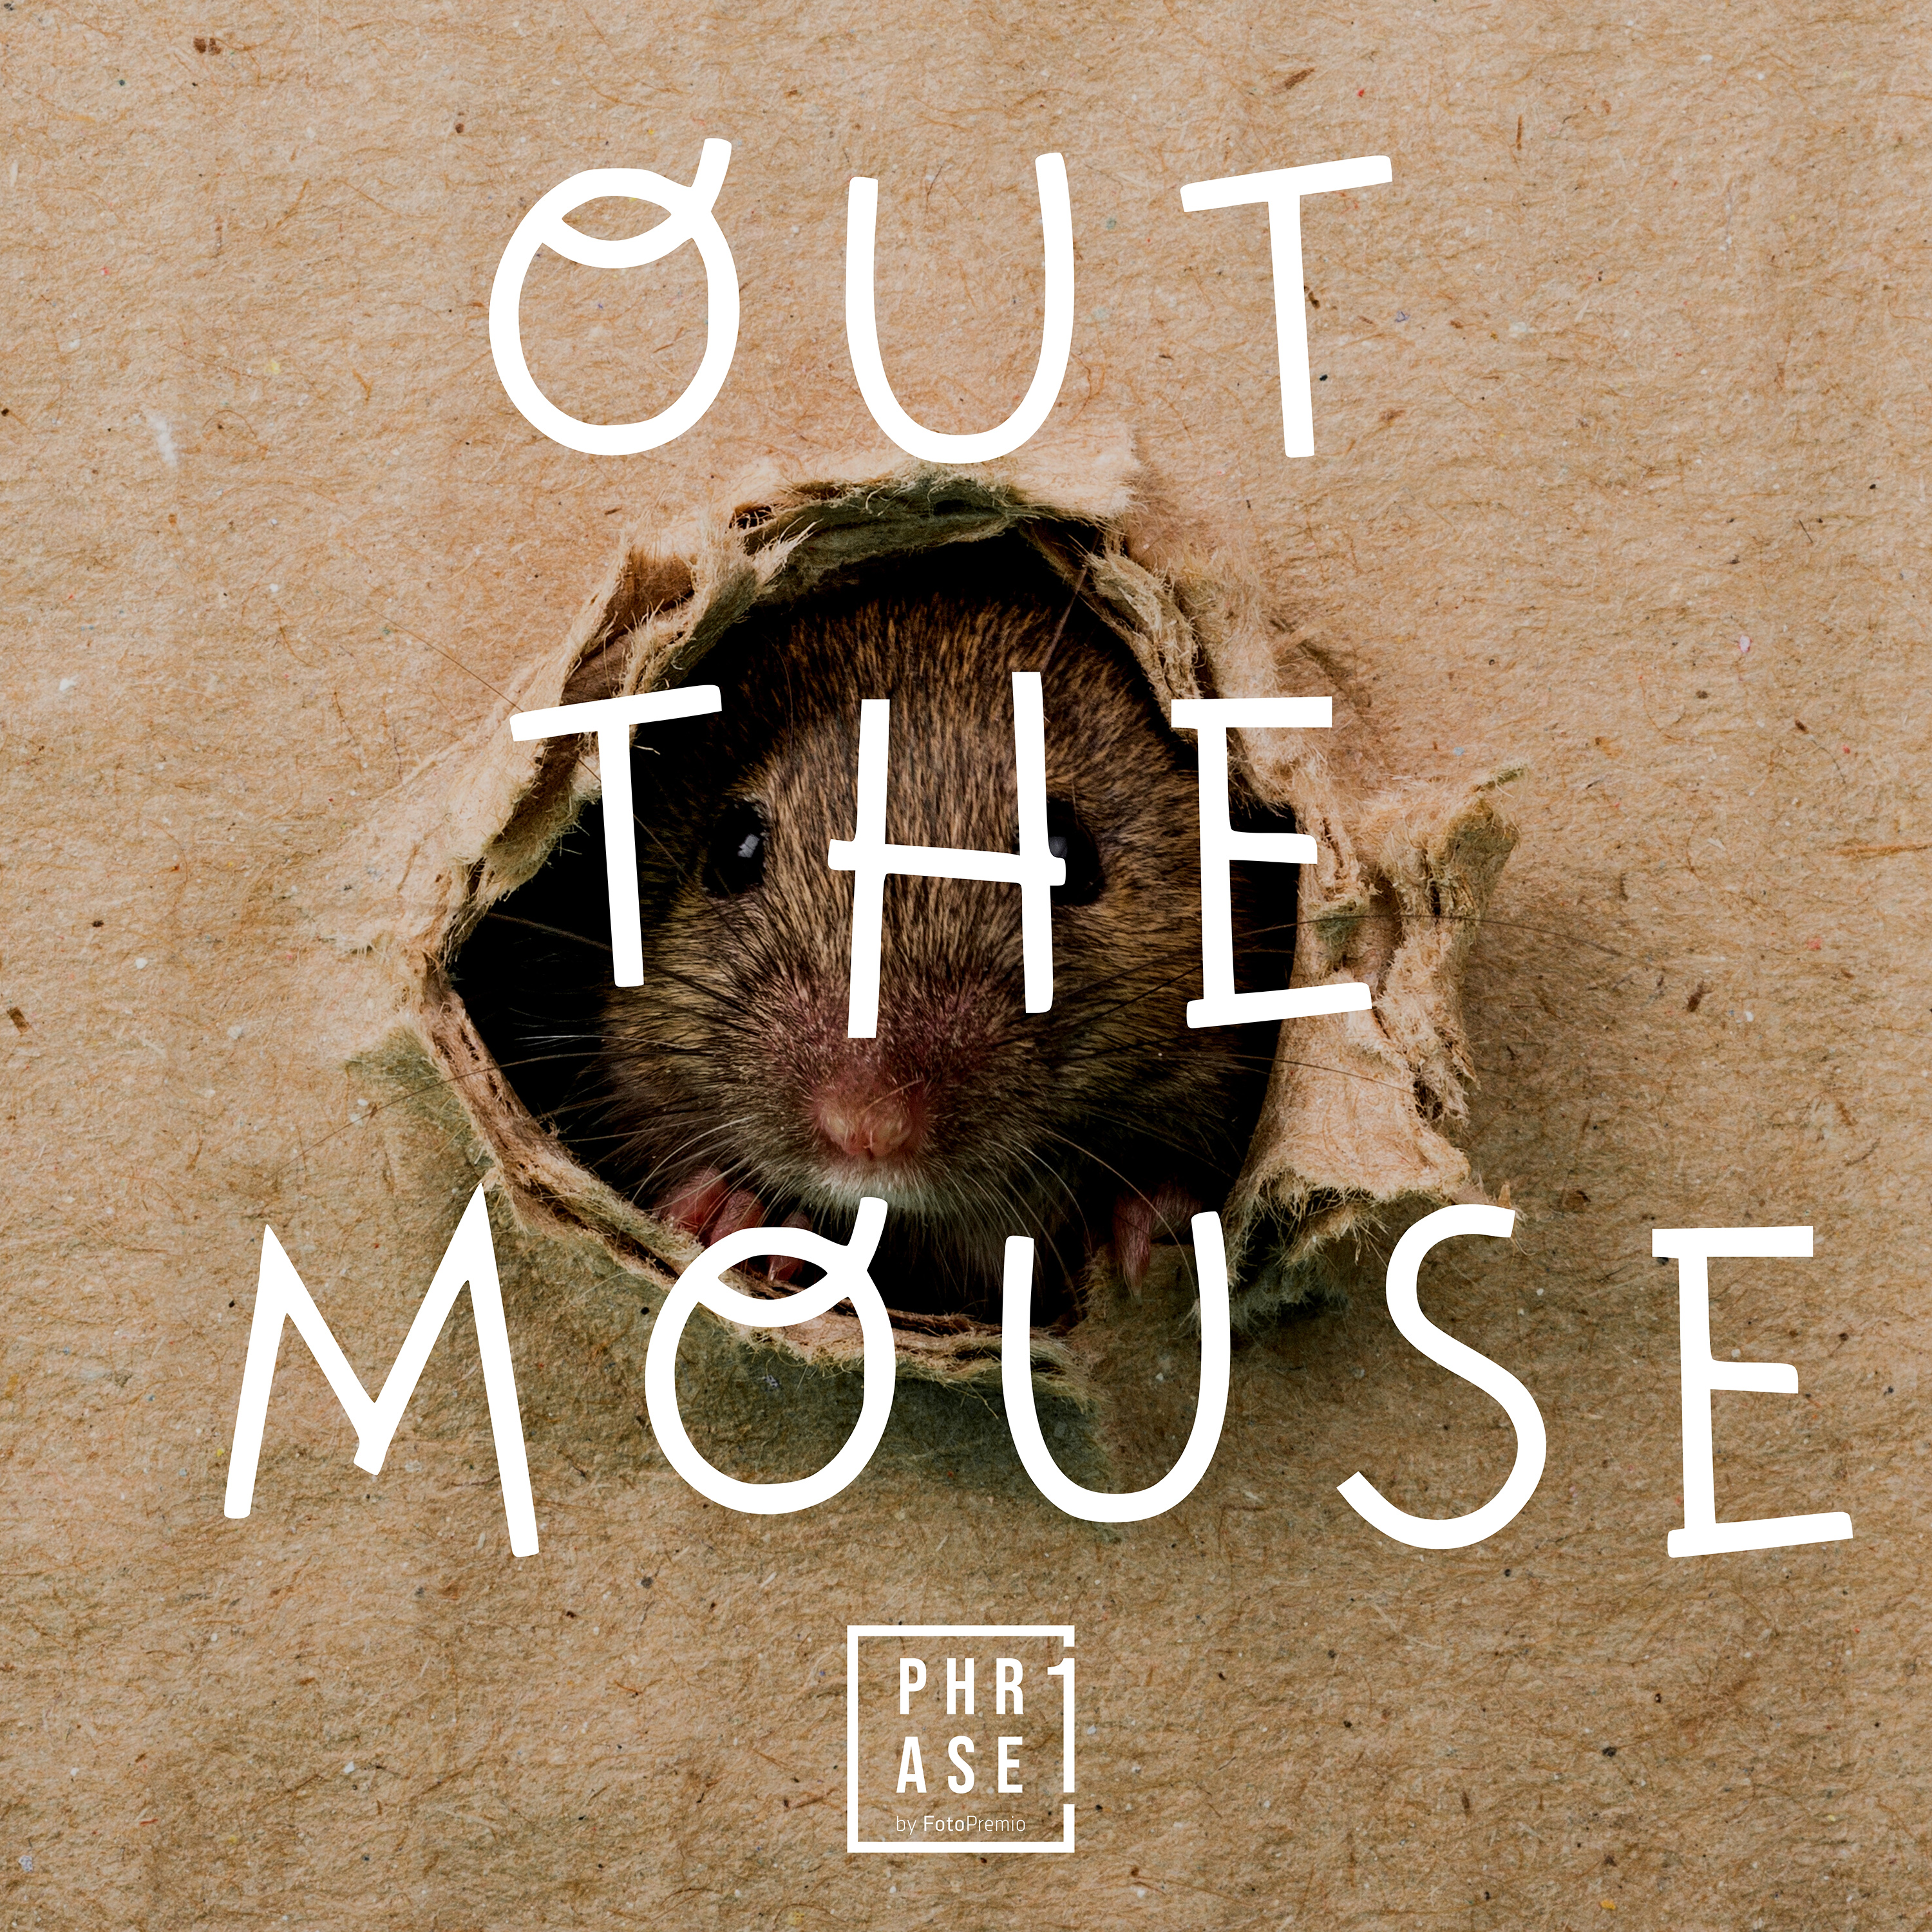 Out the mouse